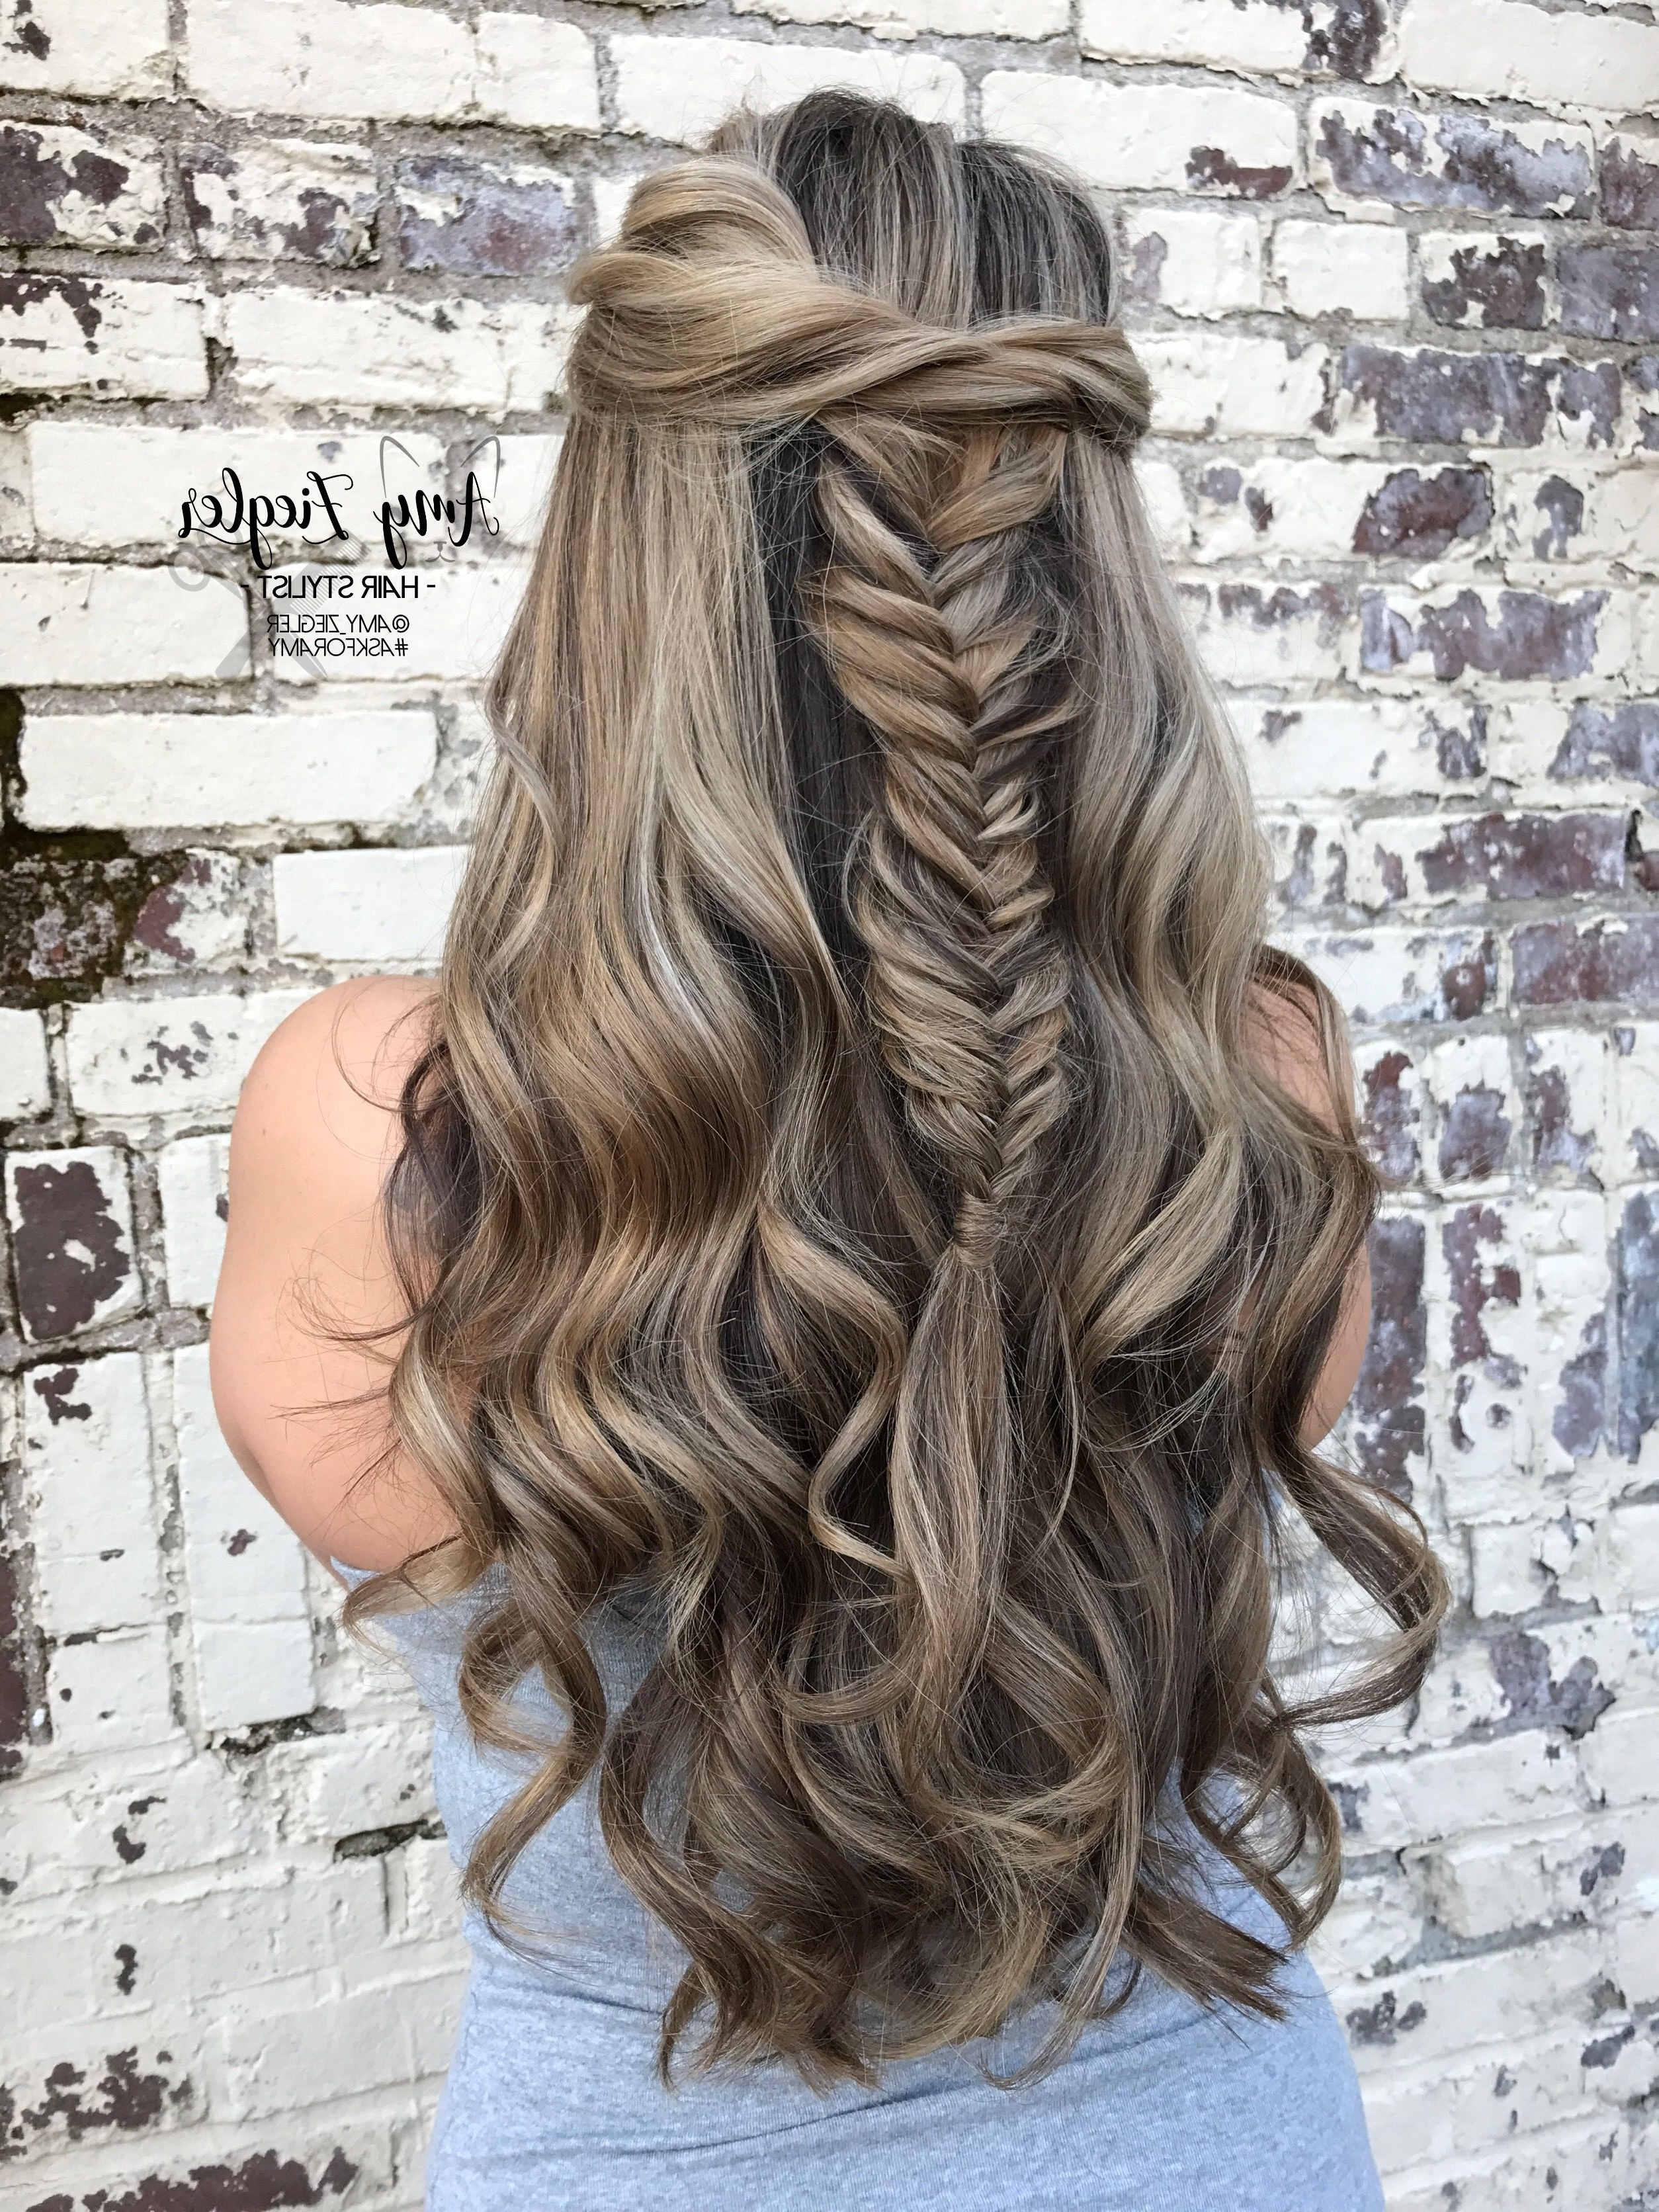 Well Known Wispy Fishtail Hairstyles Throughout Blonde Highlight Lowlight Long Hair With Wispy Fishtail Braid (View 19 of 20)